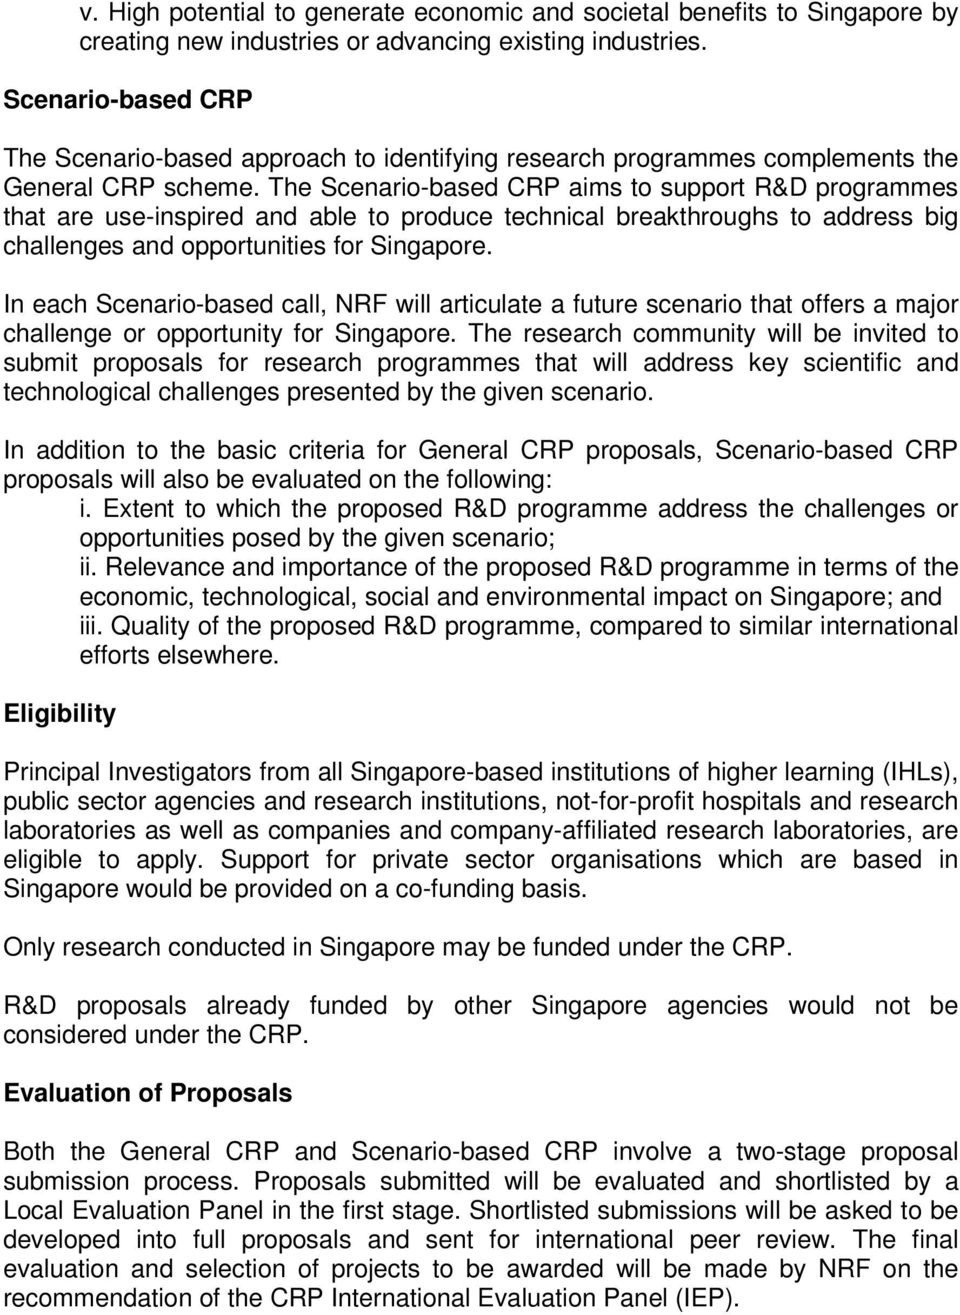 The Scenario-based CRP aims to support R&D programmes that are use-inspired and able to produce technical breakthroughs to address big challenges and opportunities for Singapore.